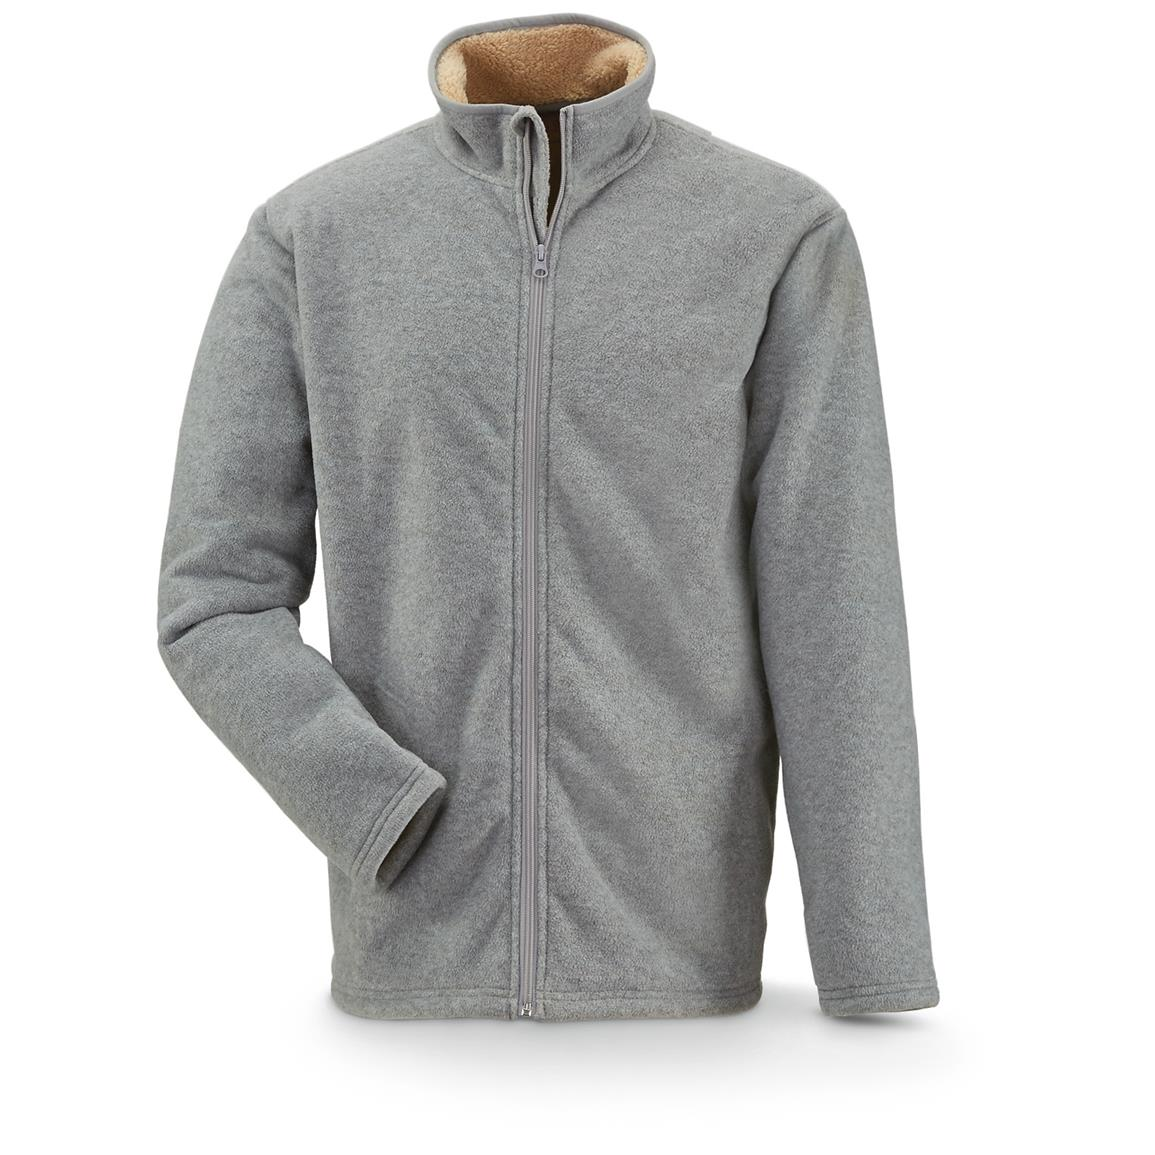 Marino Bay Men's Full Zip Fleece Jacket with Sherpa Lining, Heather Gray